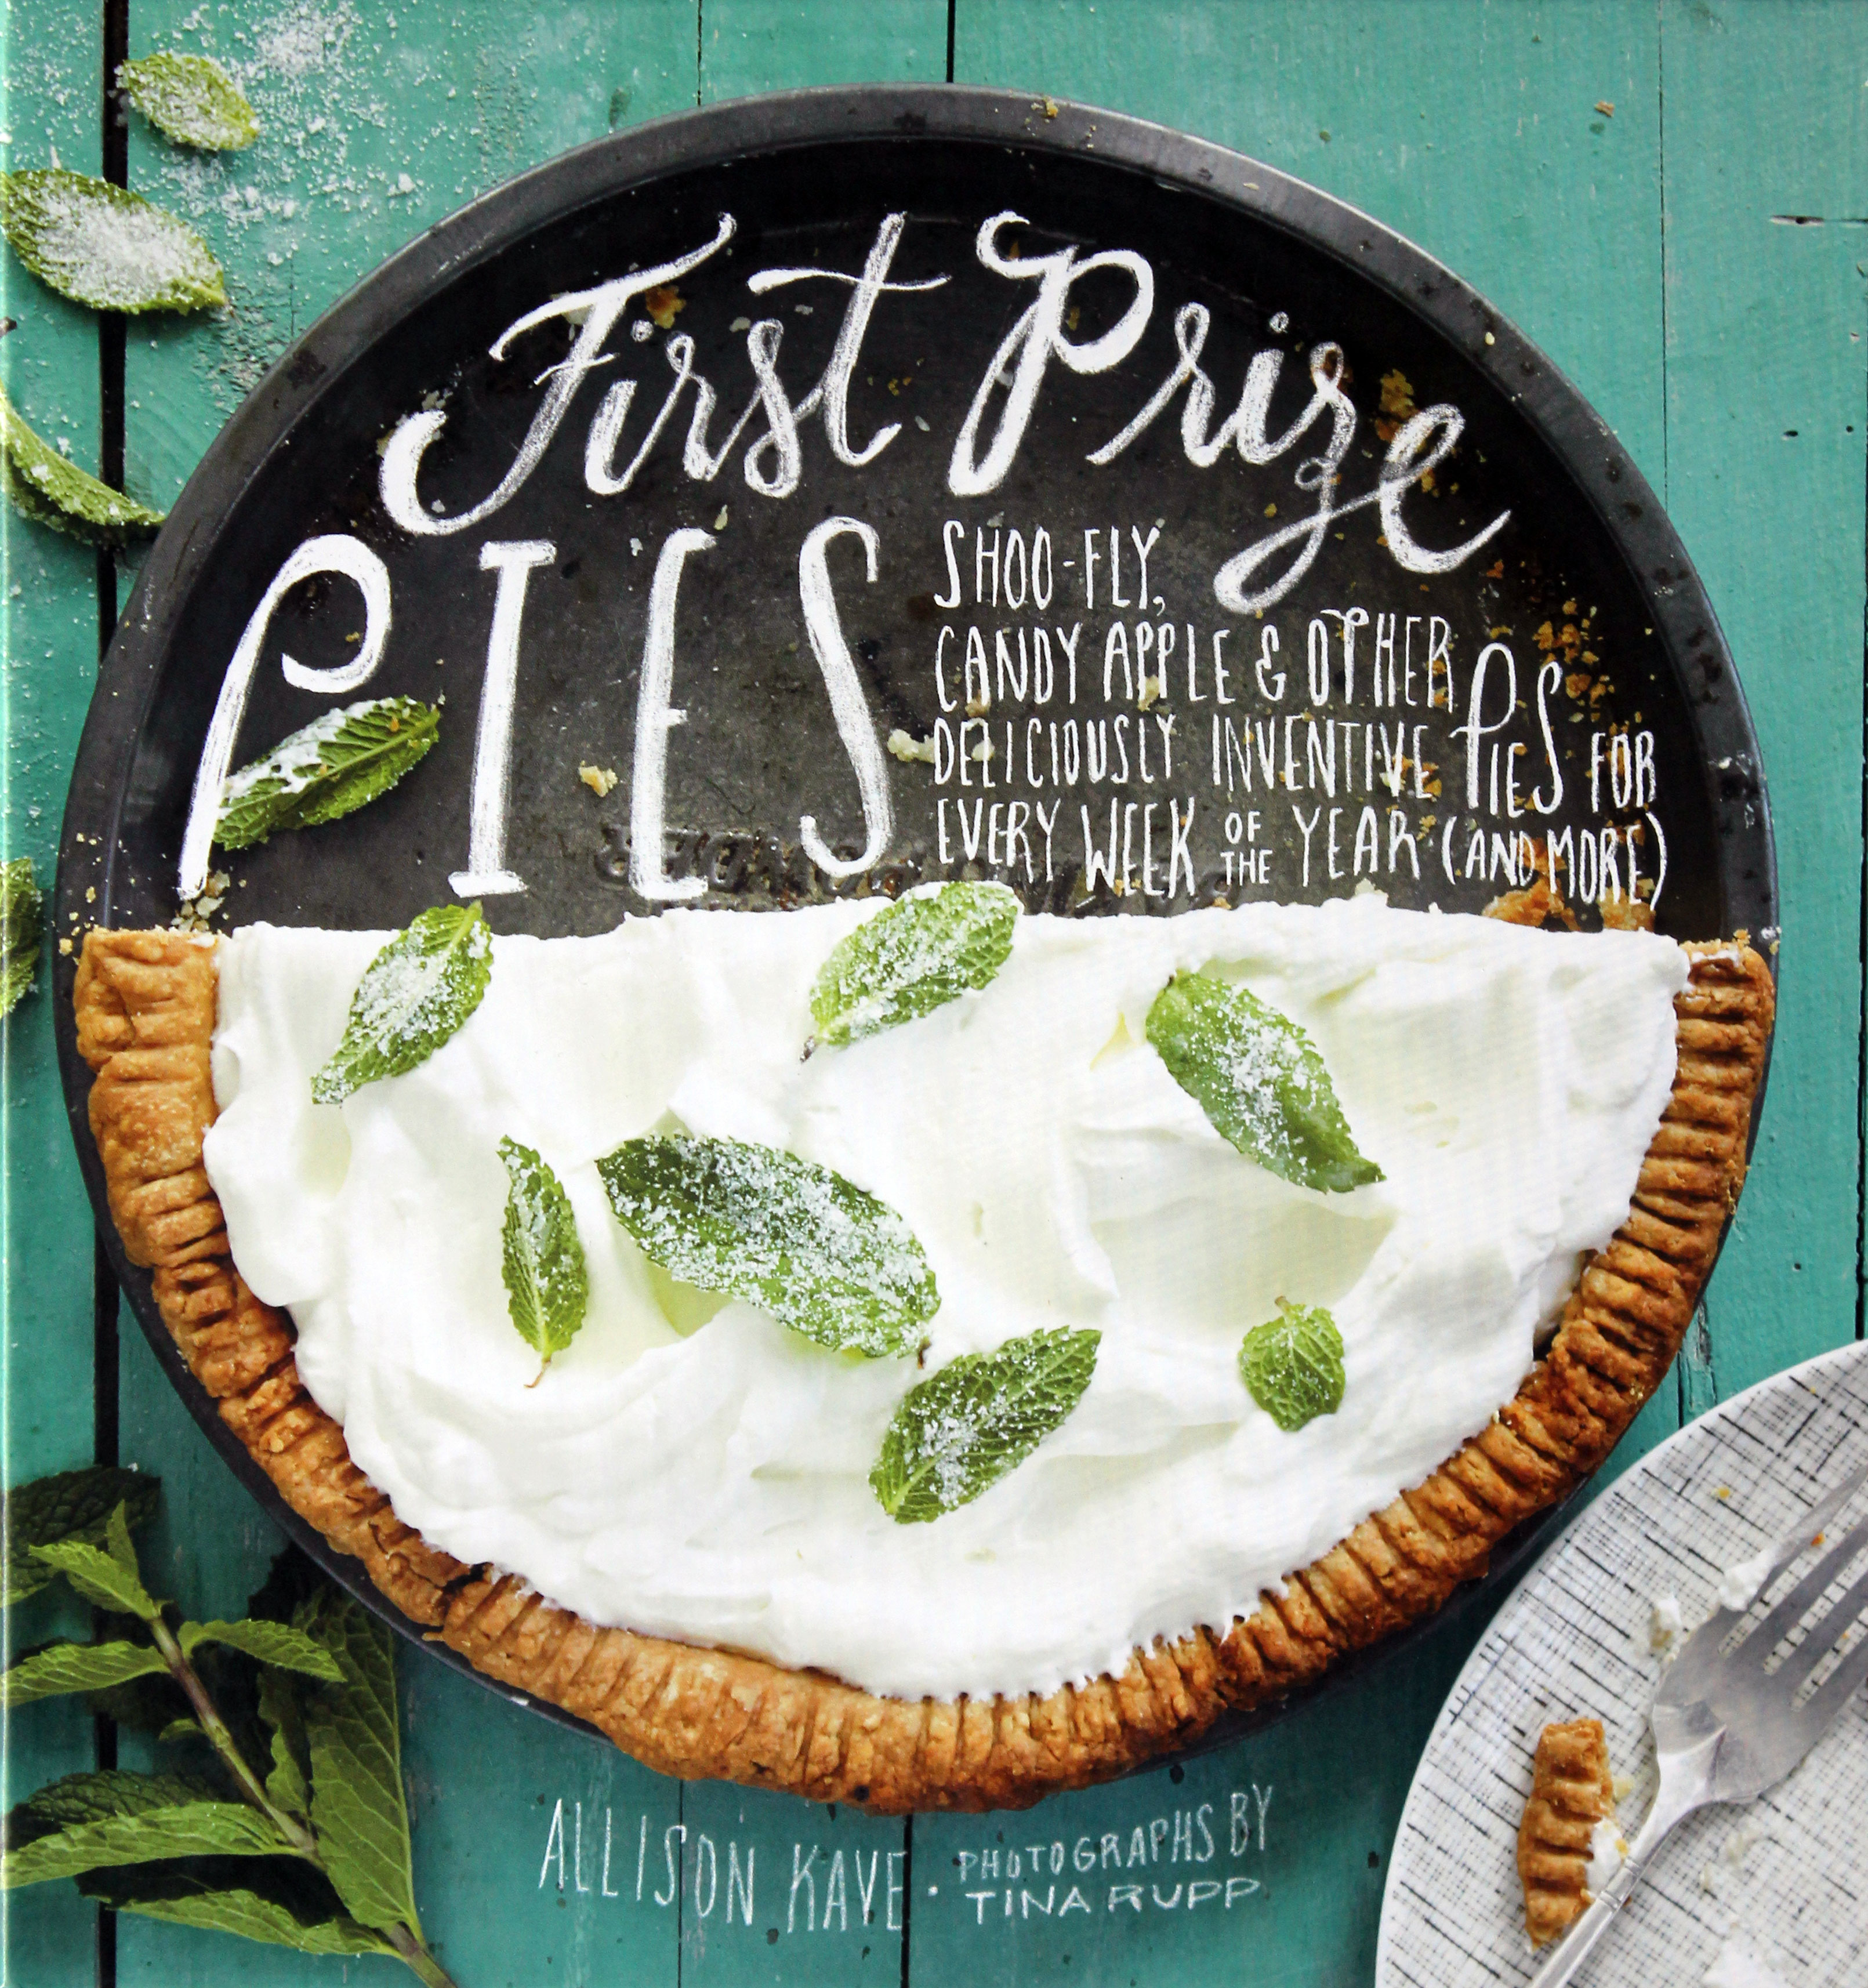 A Summer Cookbook for You While We Are in Yellowstone: First Prize Pies